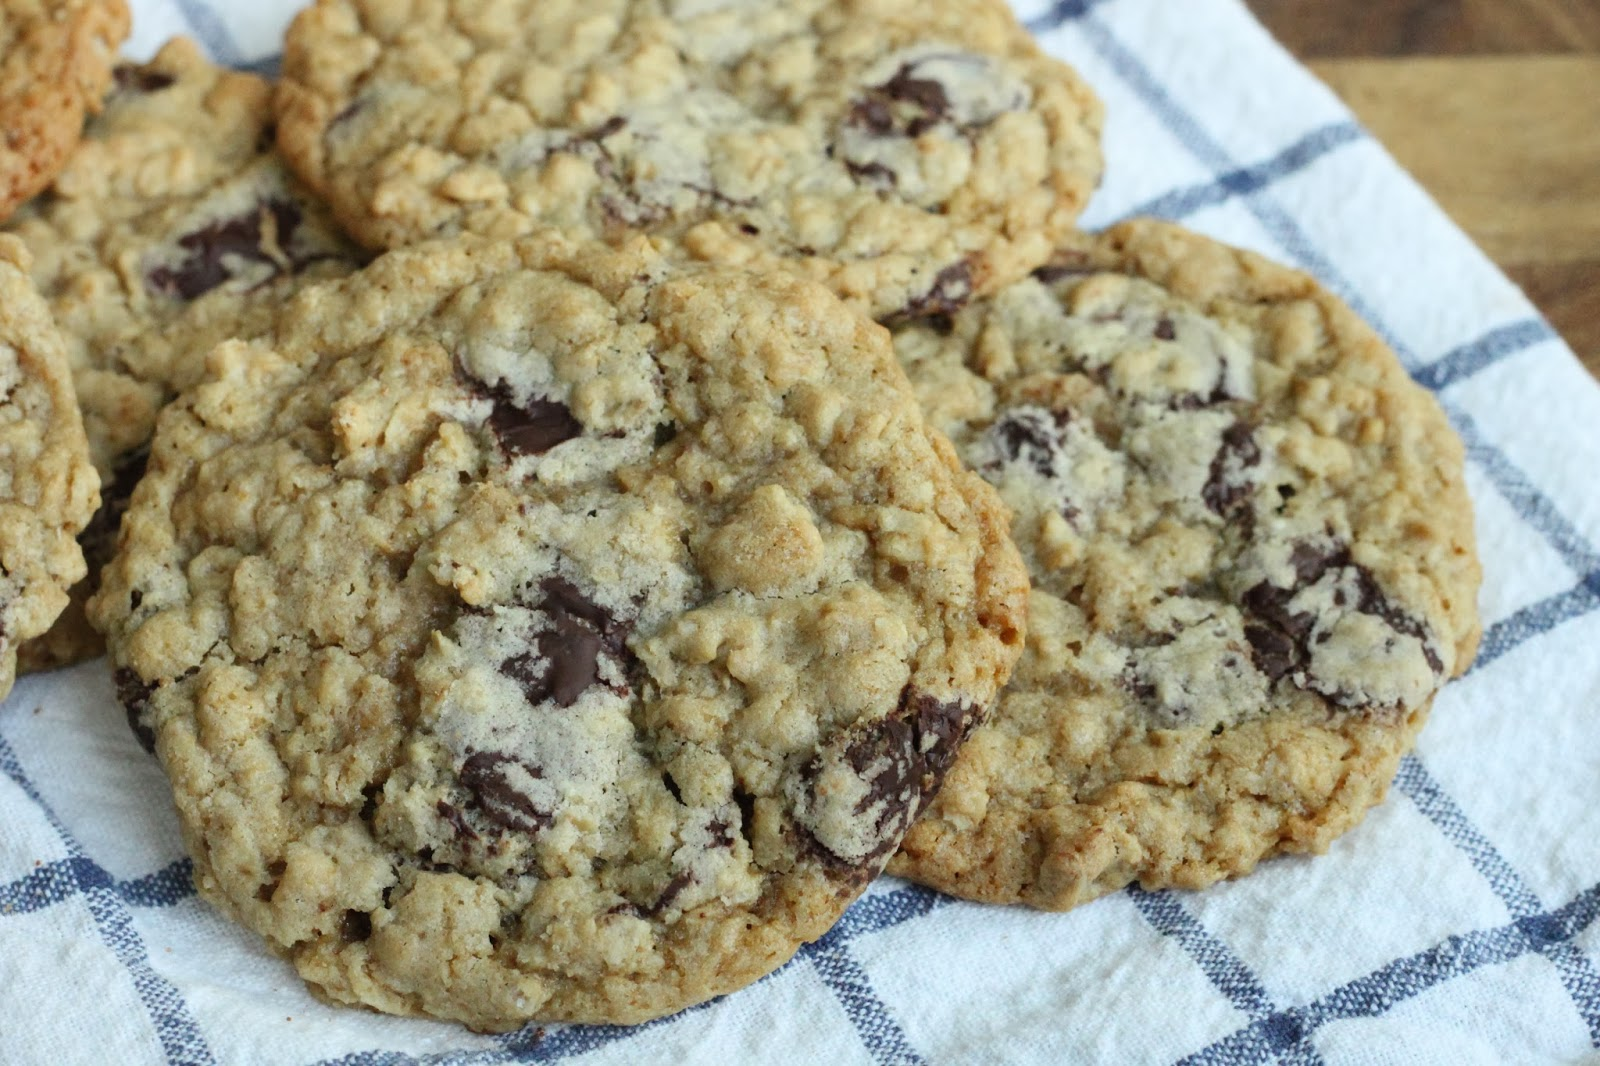 Potbelly cookies